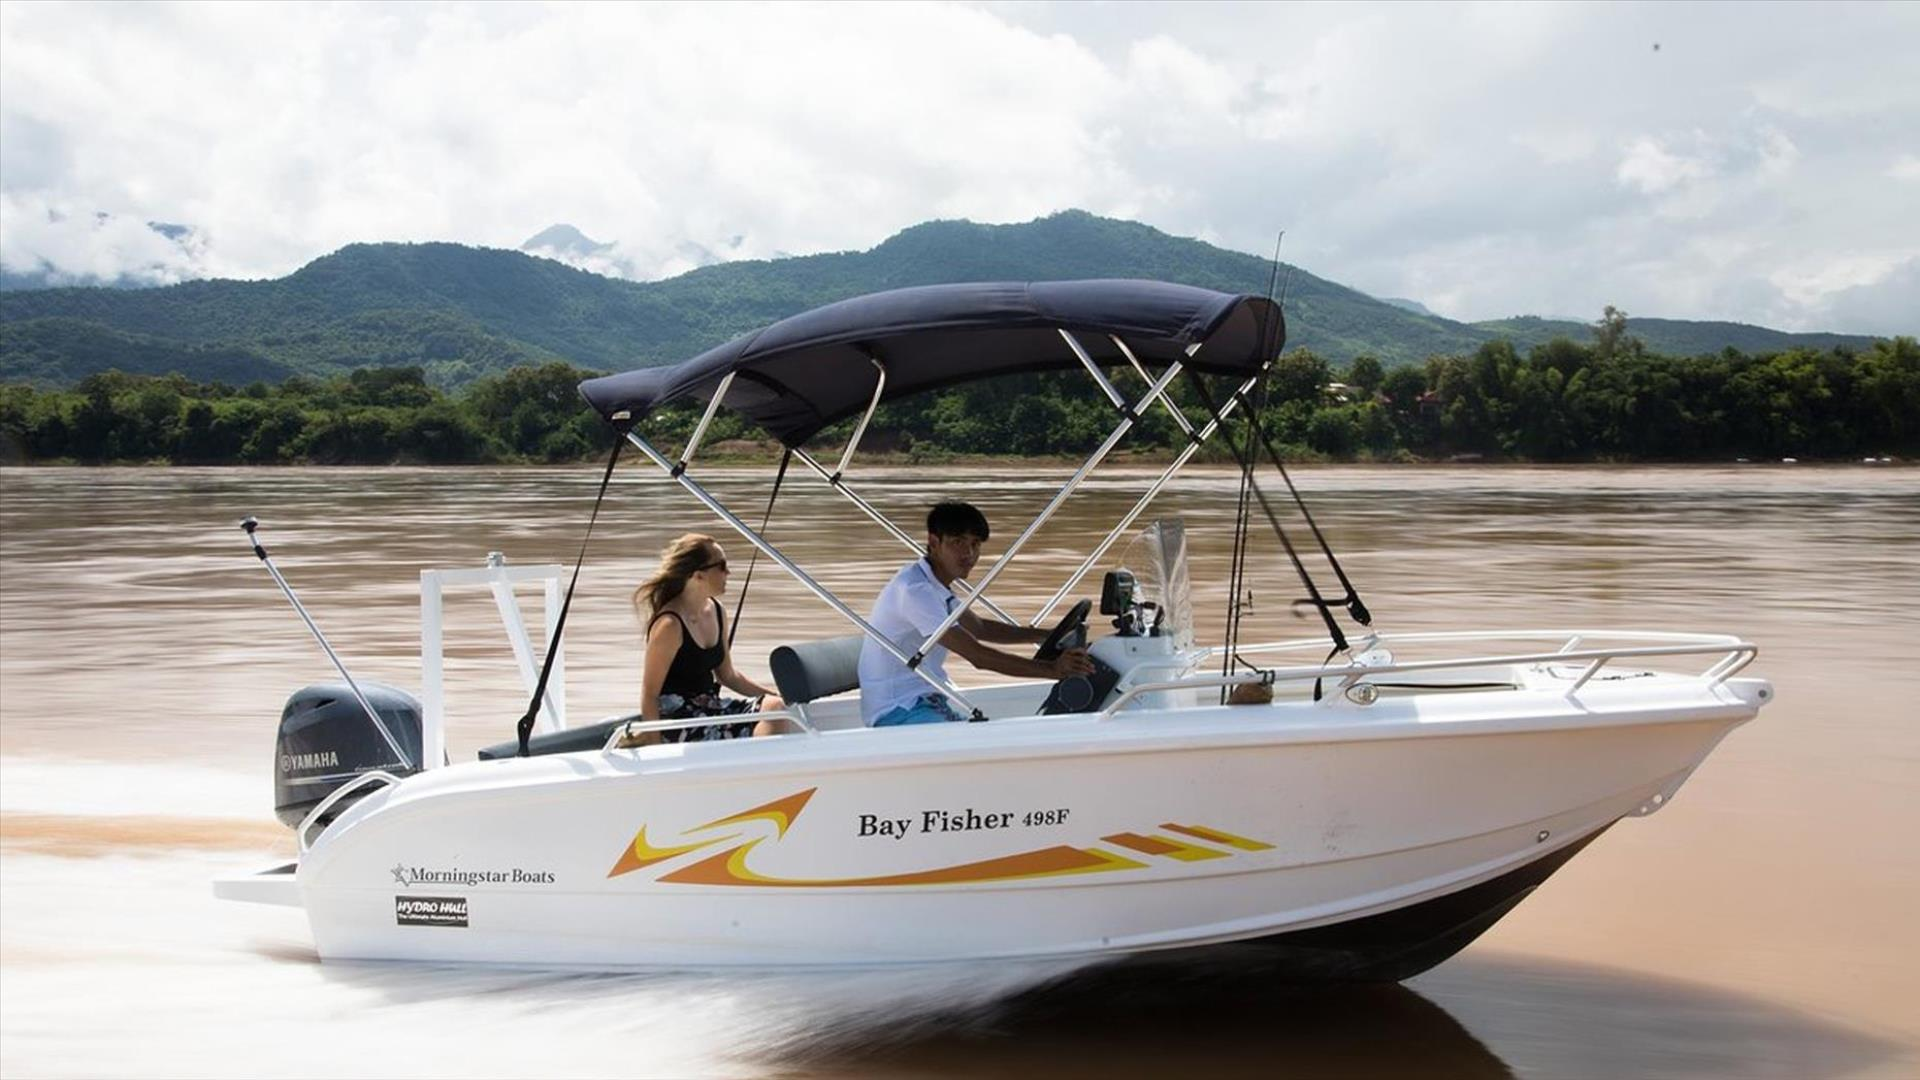 Laos, Luang Prabang: Private Boat Charter - 1 Day | Discover Secret Locations in style